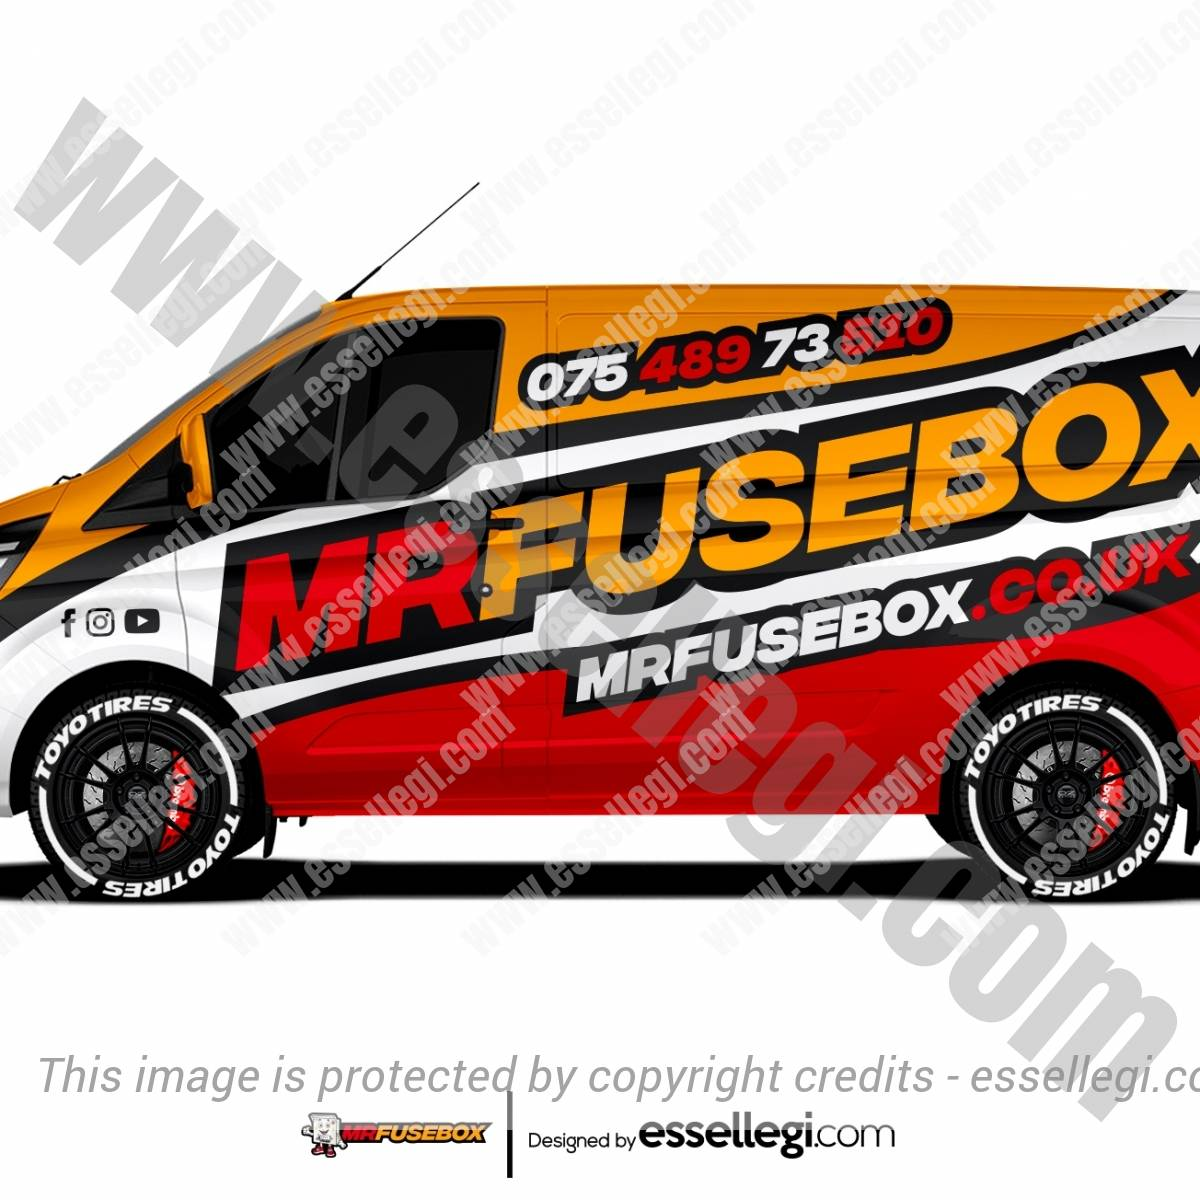 MR FUSEBOX | VAN WRAP DESIGN 🇬🇧